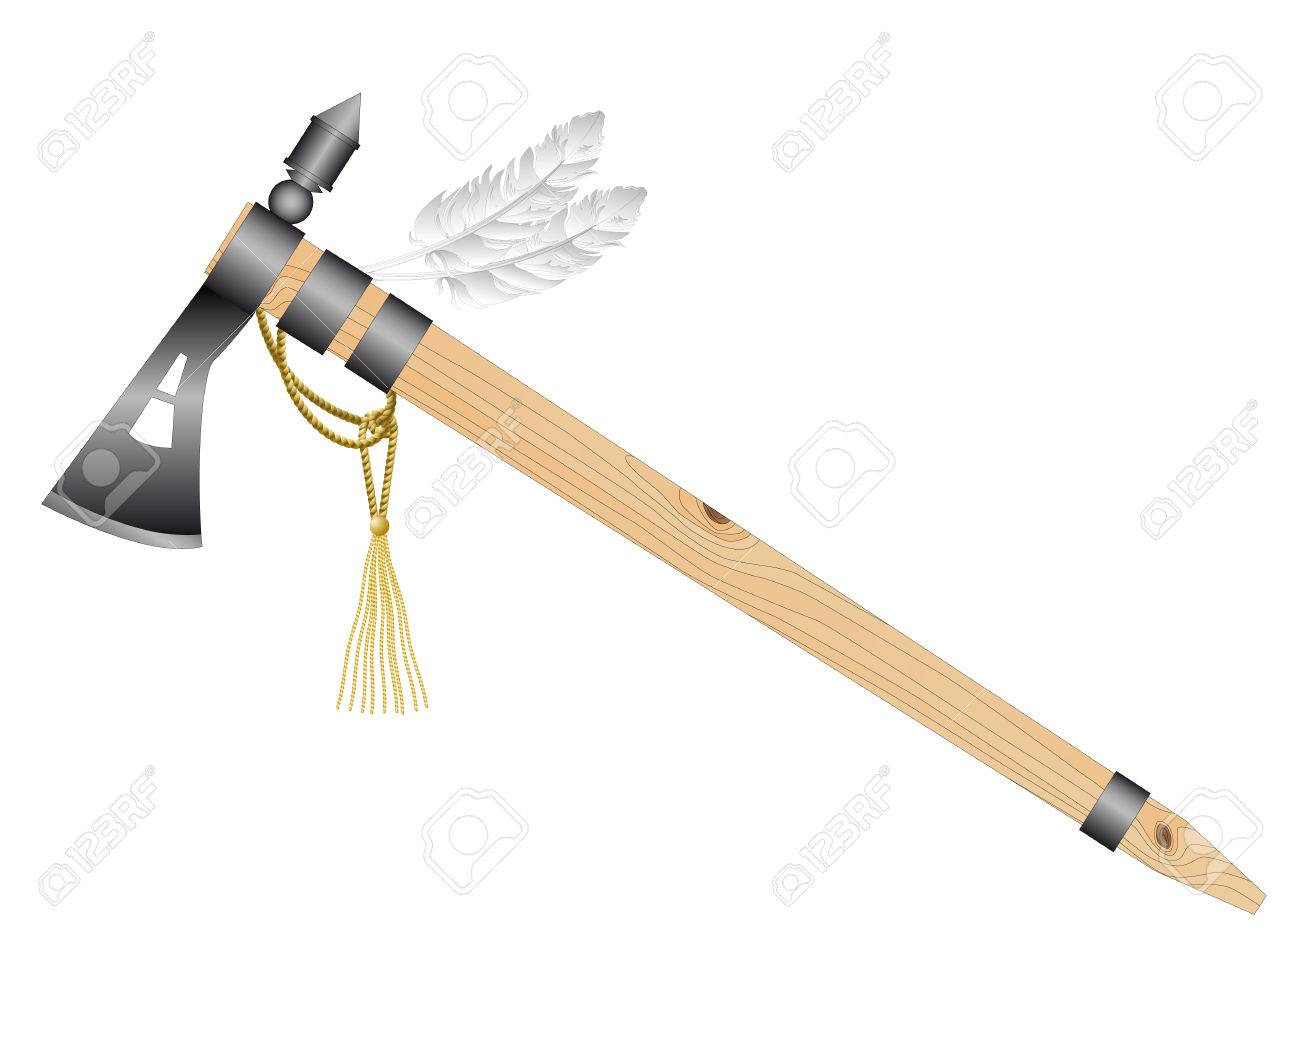 1300x1040 Indian Tomahawk Battle Ax On A White Background Royalty Free